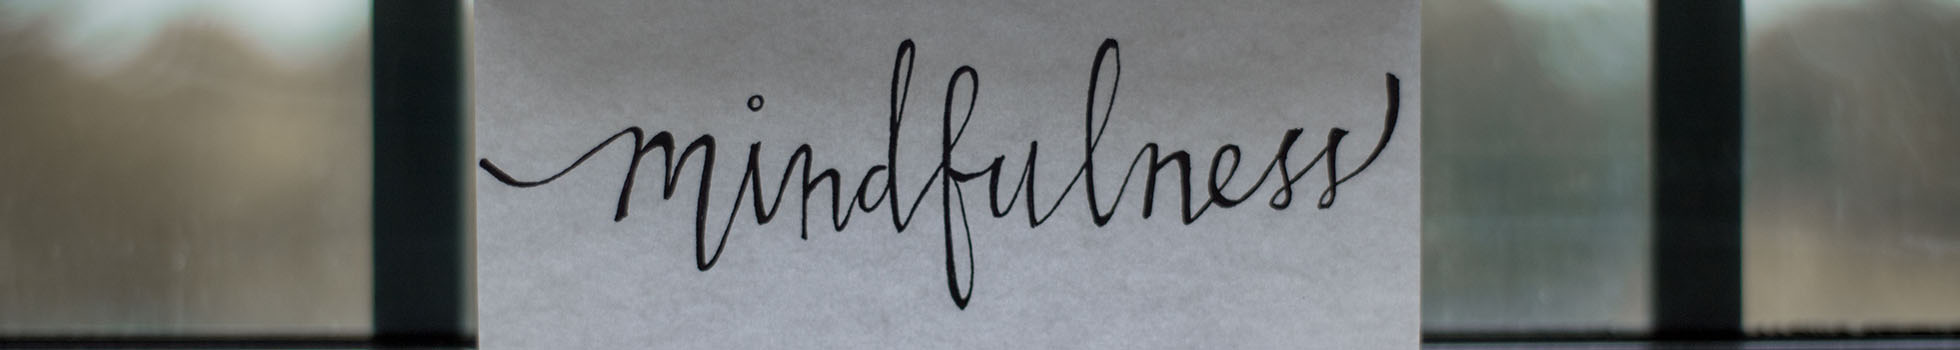 A paper with mindfulness written on it.